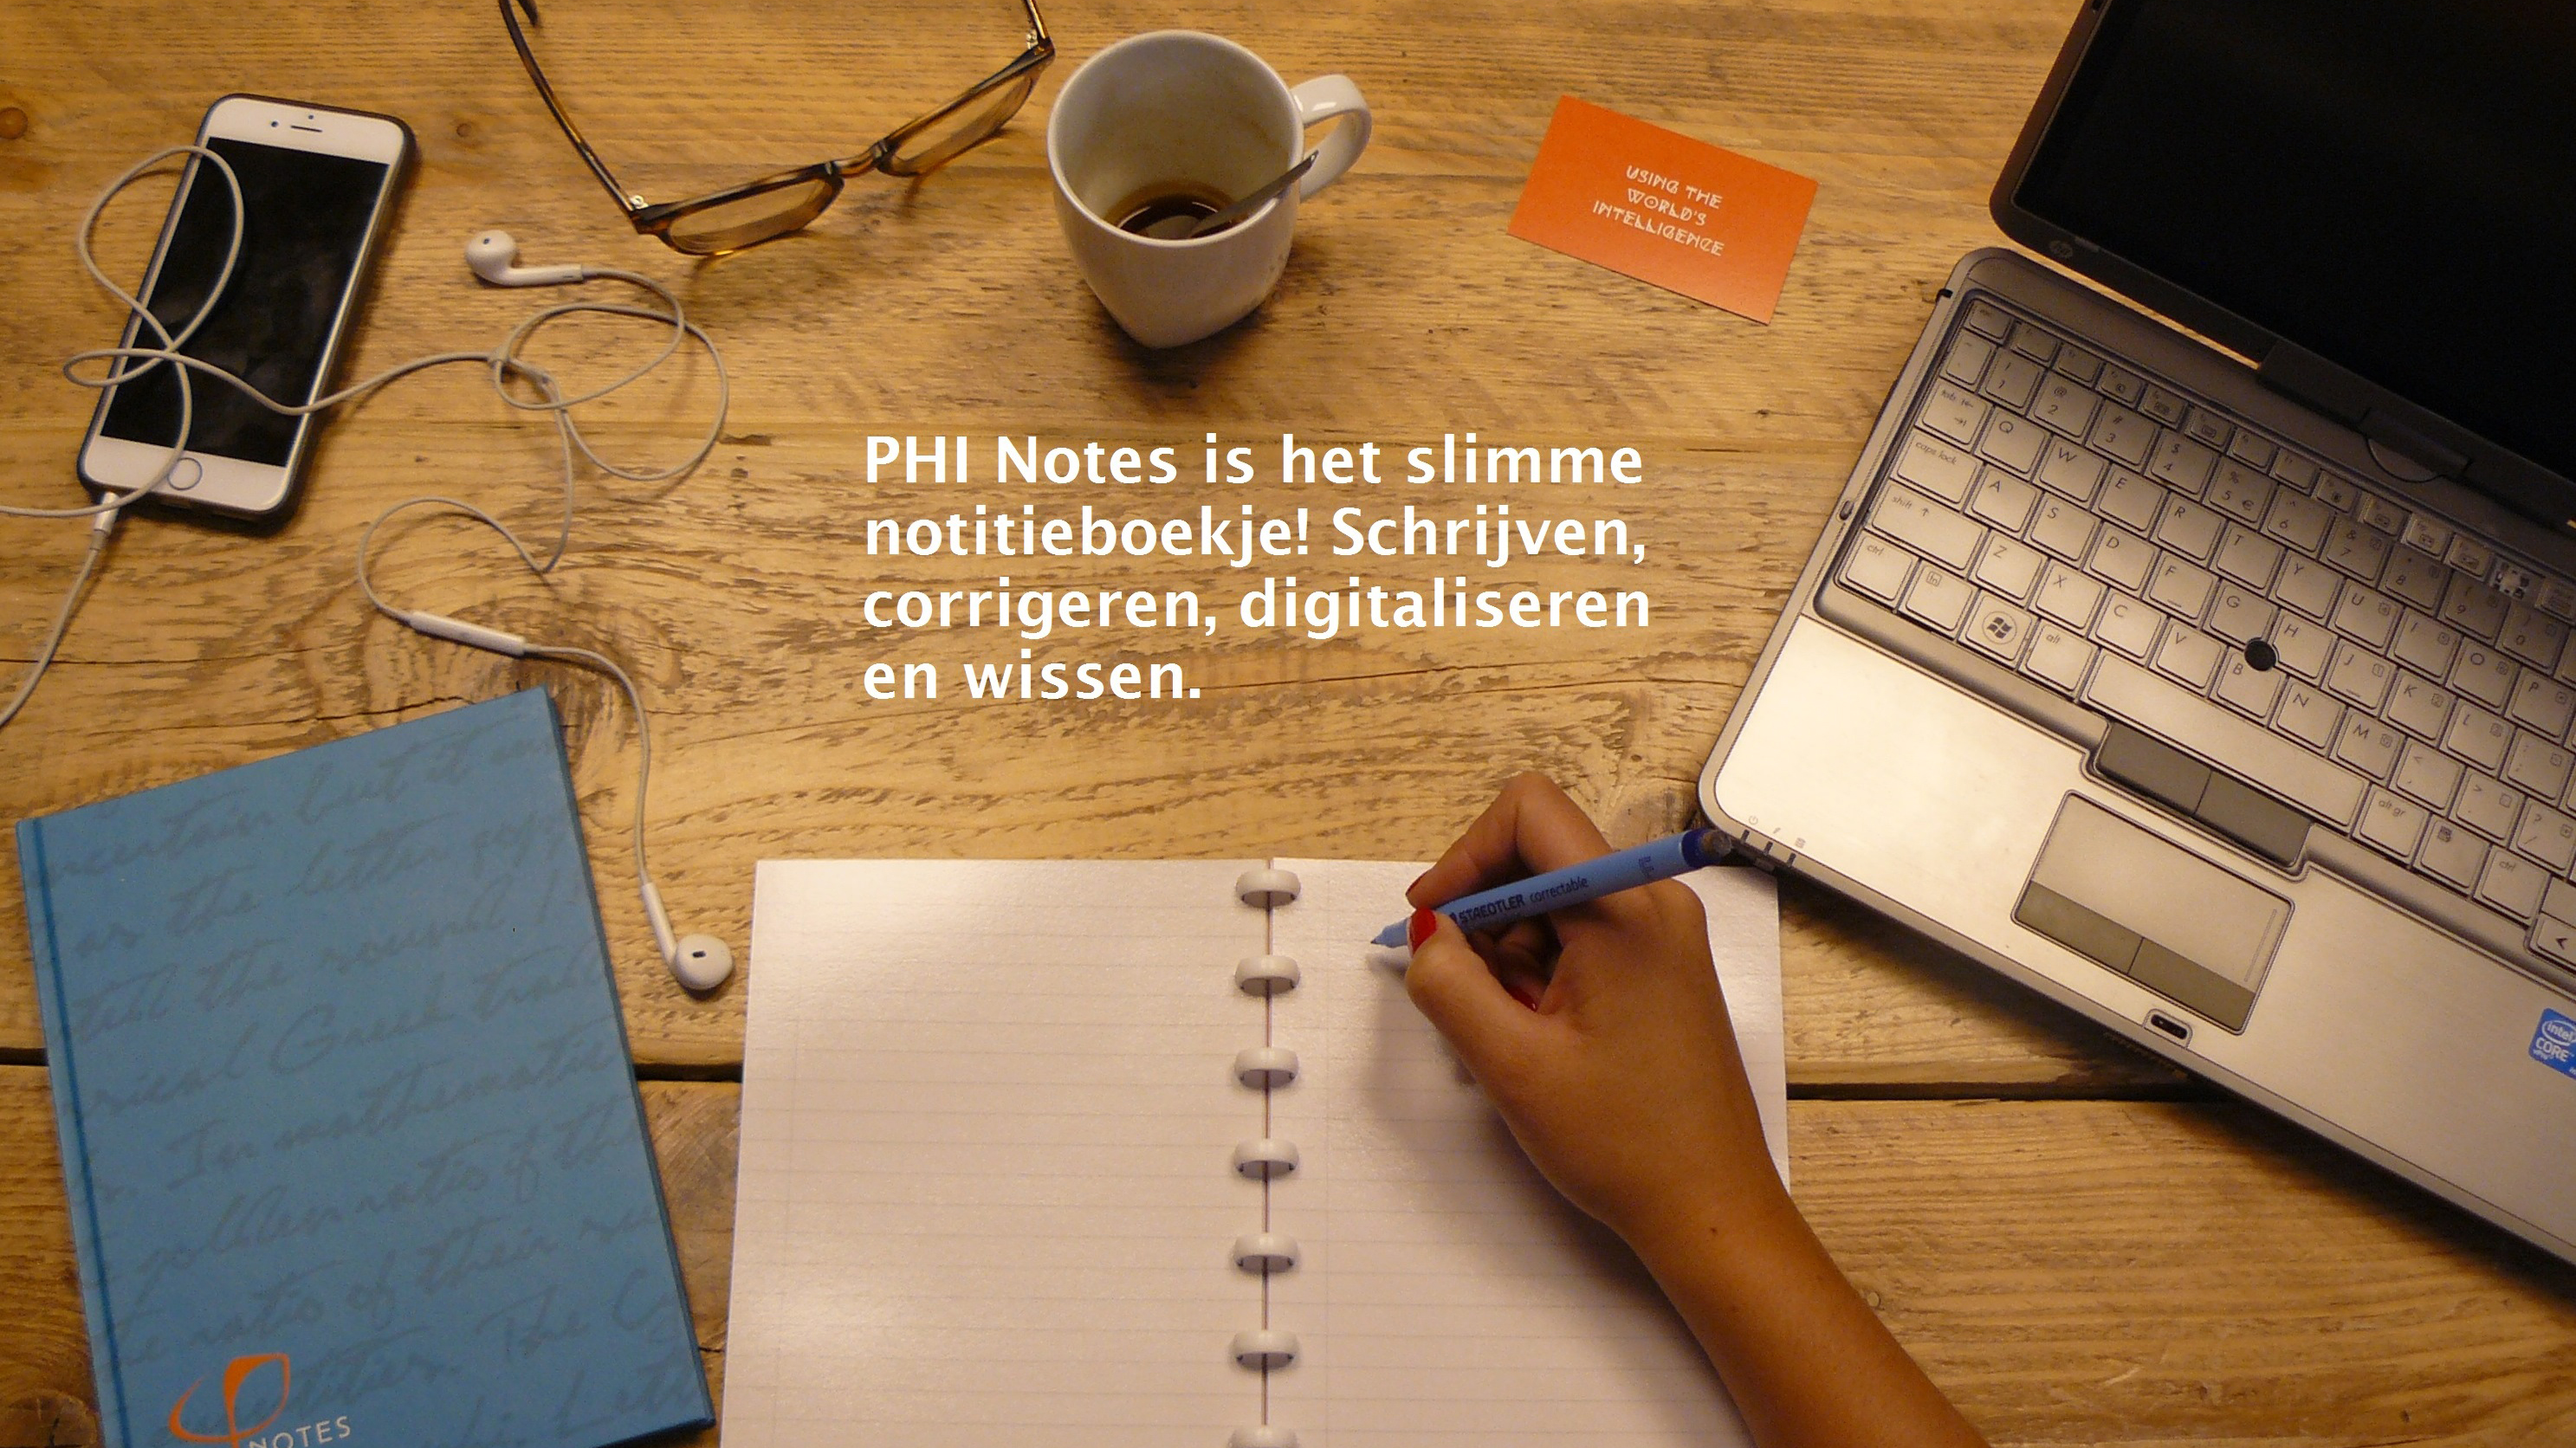 PHI Notes image